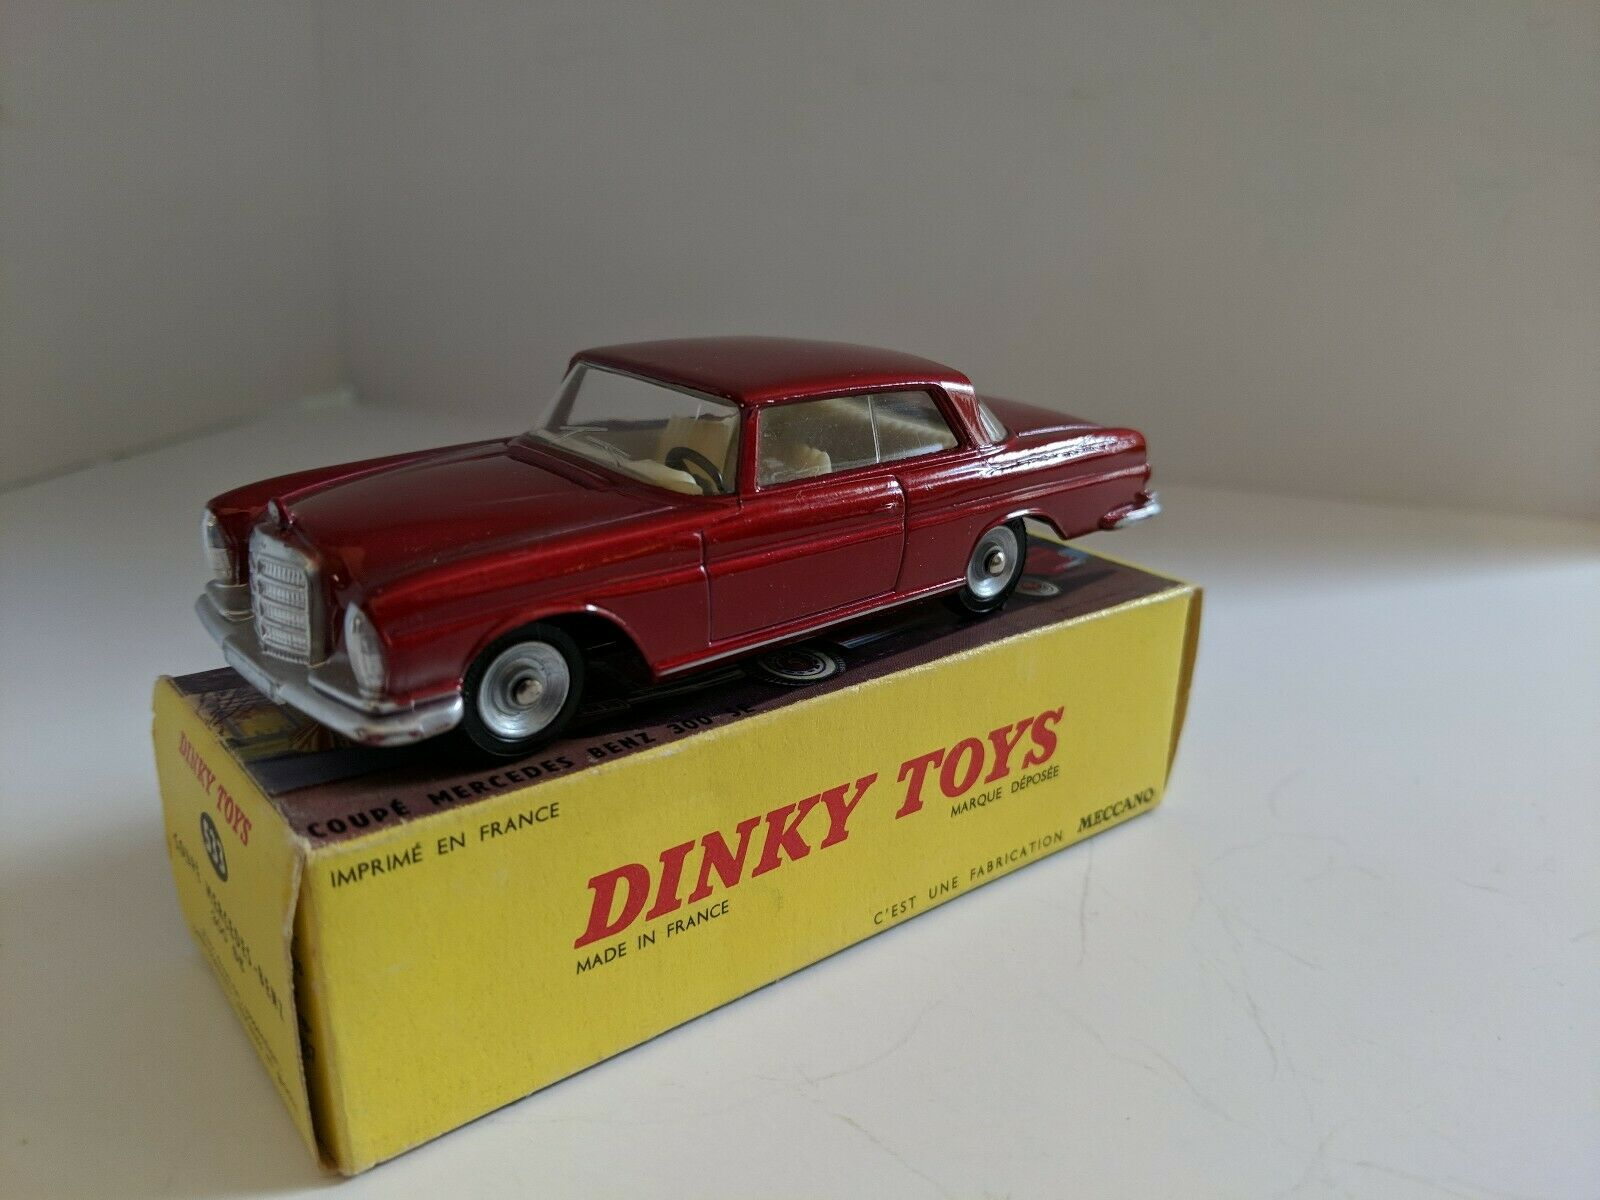 DINKY TOYS 533 MERCEDES BENZ 300SE avec boite, 1963-70 Comme neuf Original Made in France